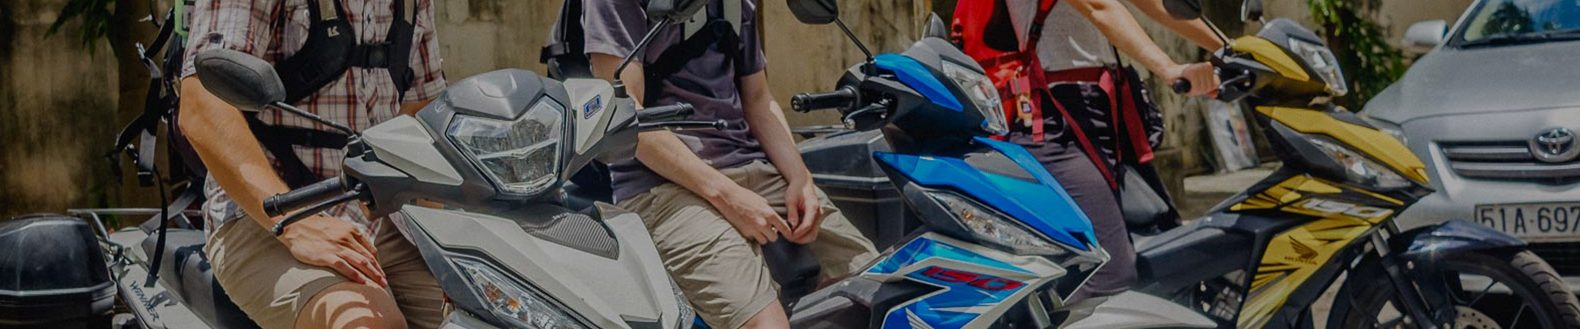 How to navigate Vietnam by motorbike